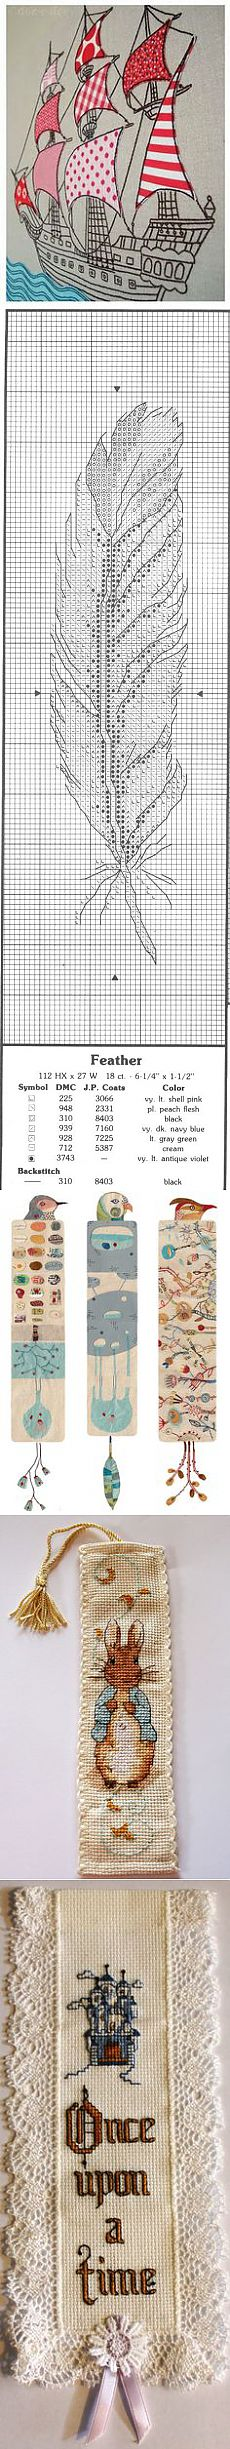 Pin by Katherine Boughton on sewing details